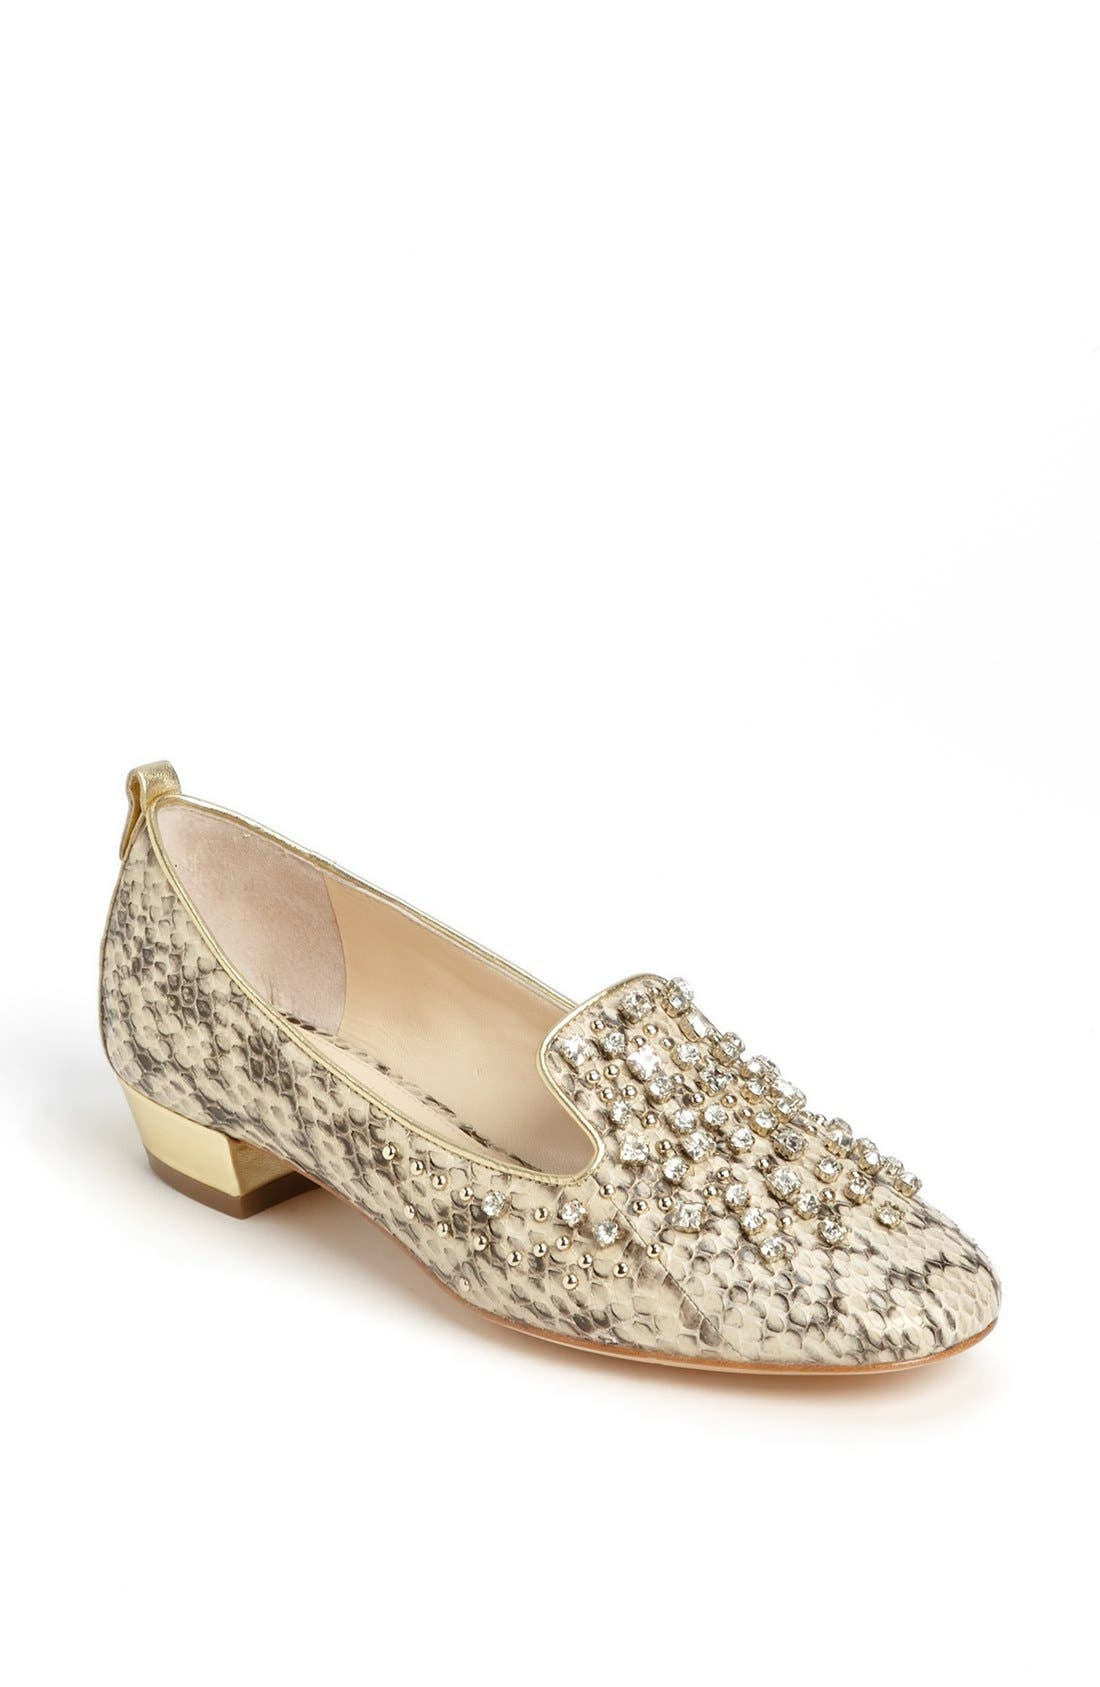 Alternate Image 1 Selected - VC Signature 'Norah' Loafer